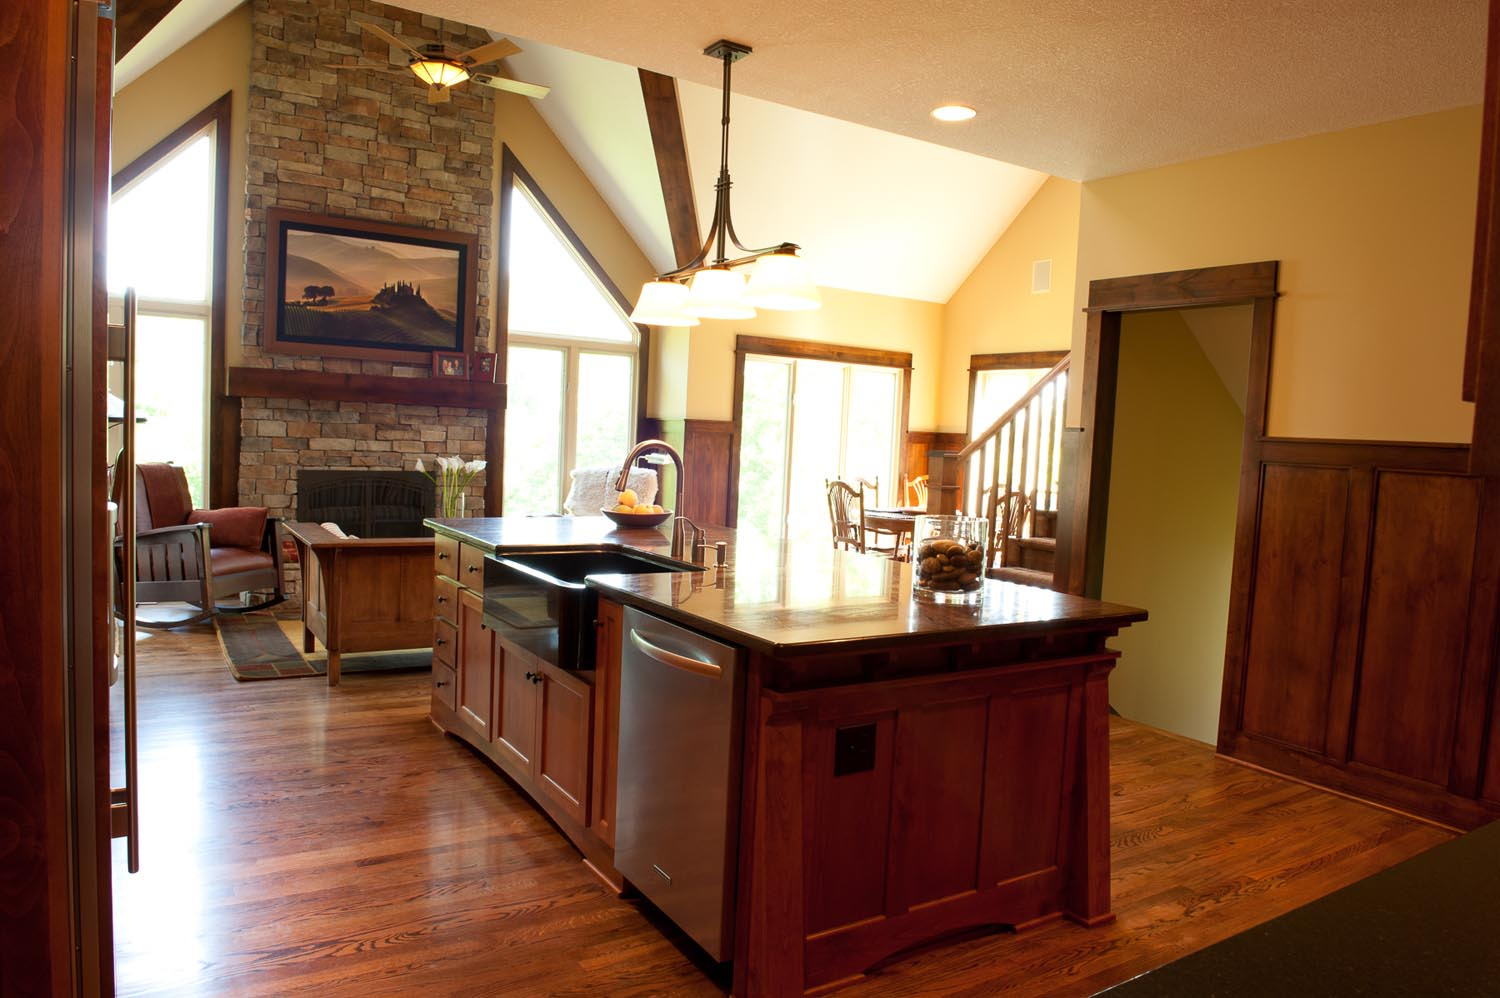 Kansas City Bathroom Remodeler Kitchen Remodeling Room Additions Basement